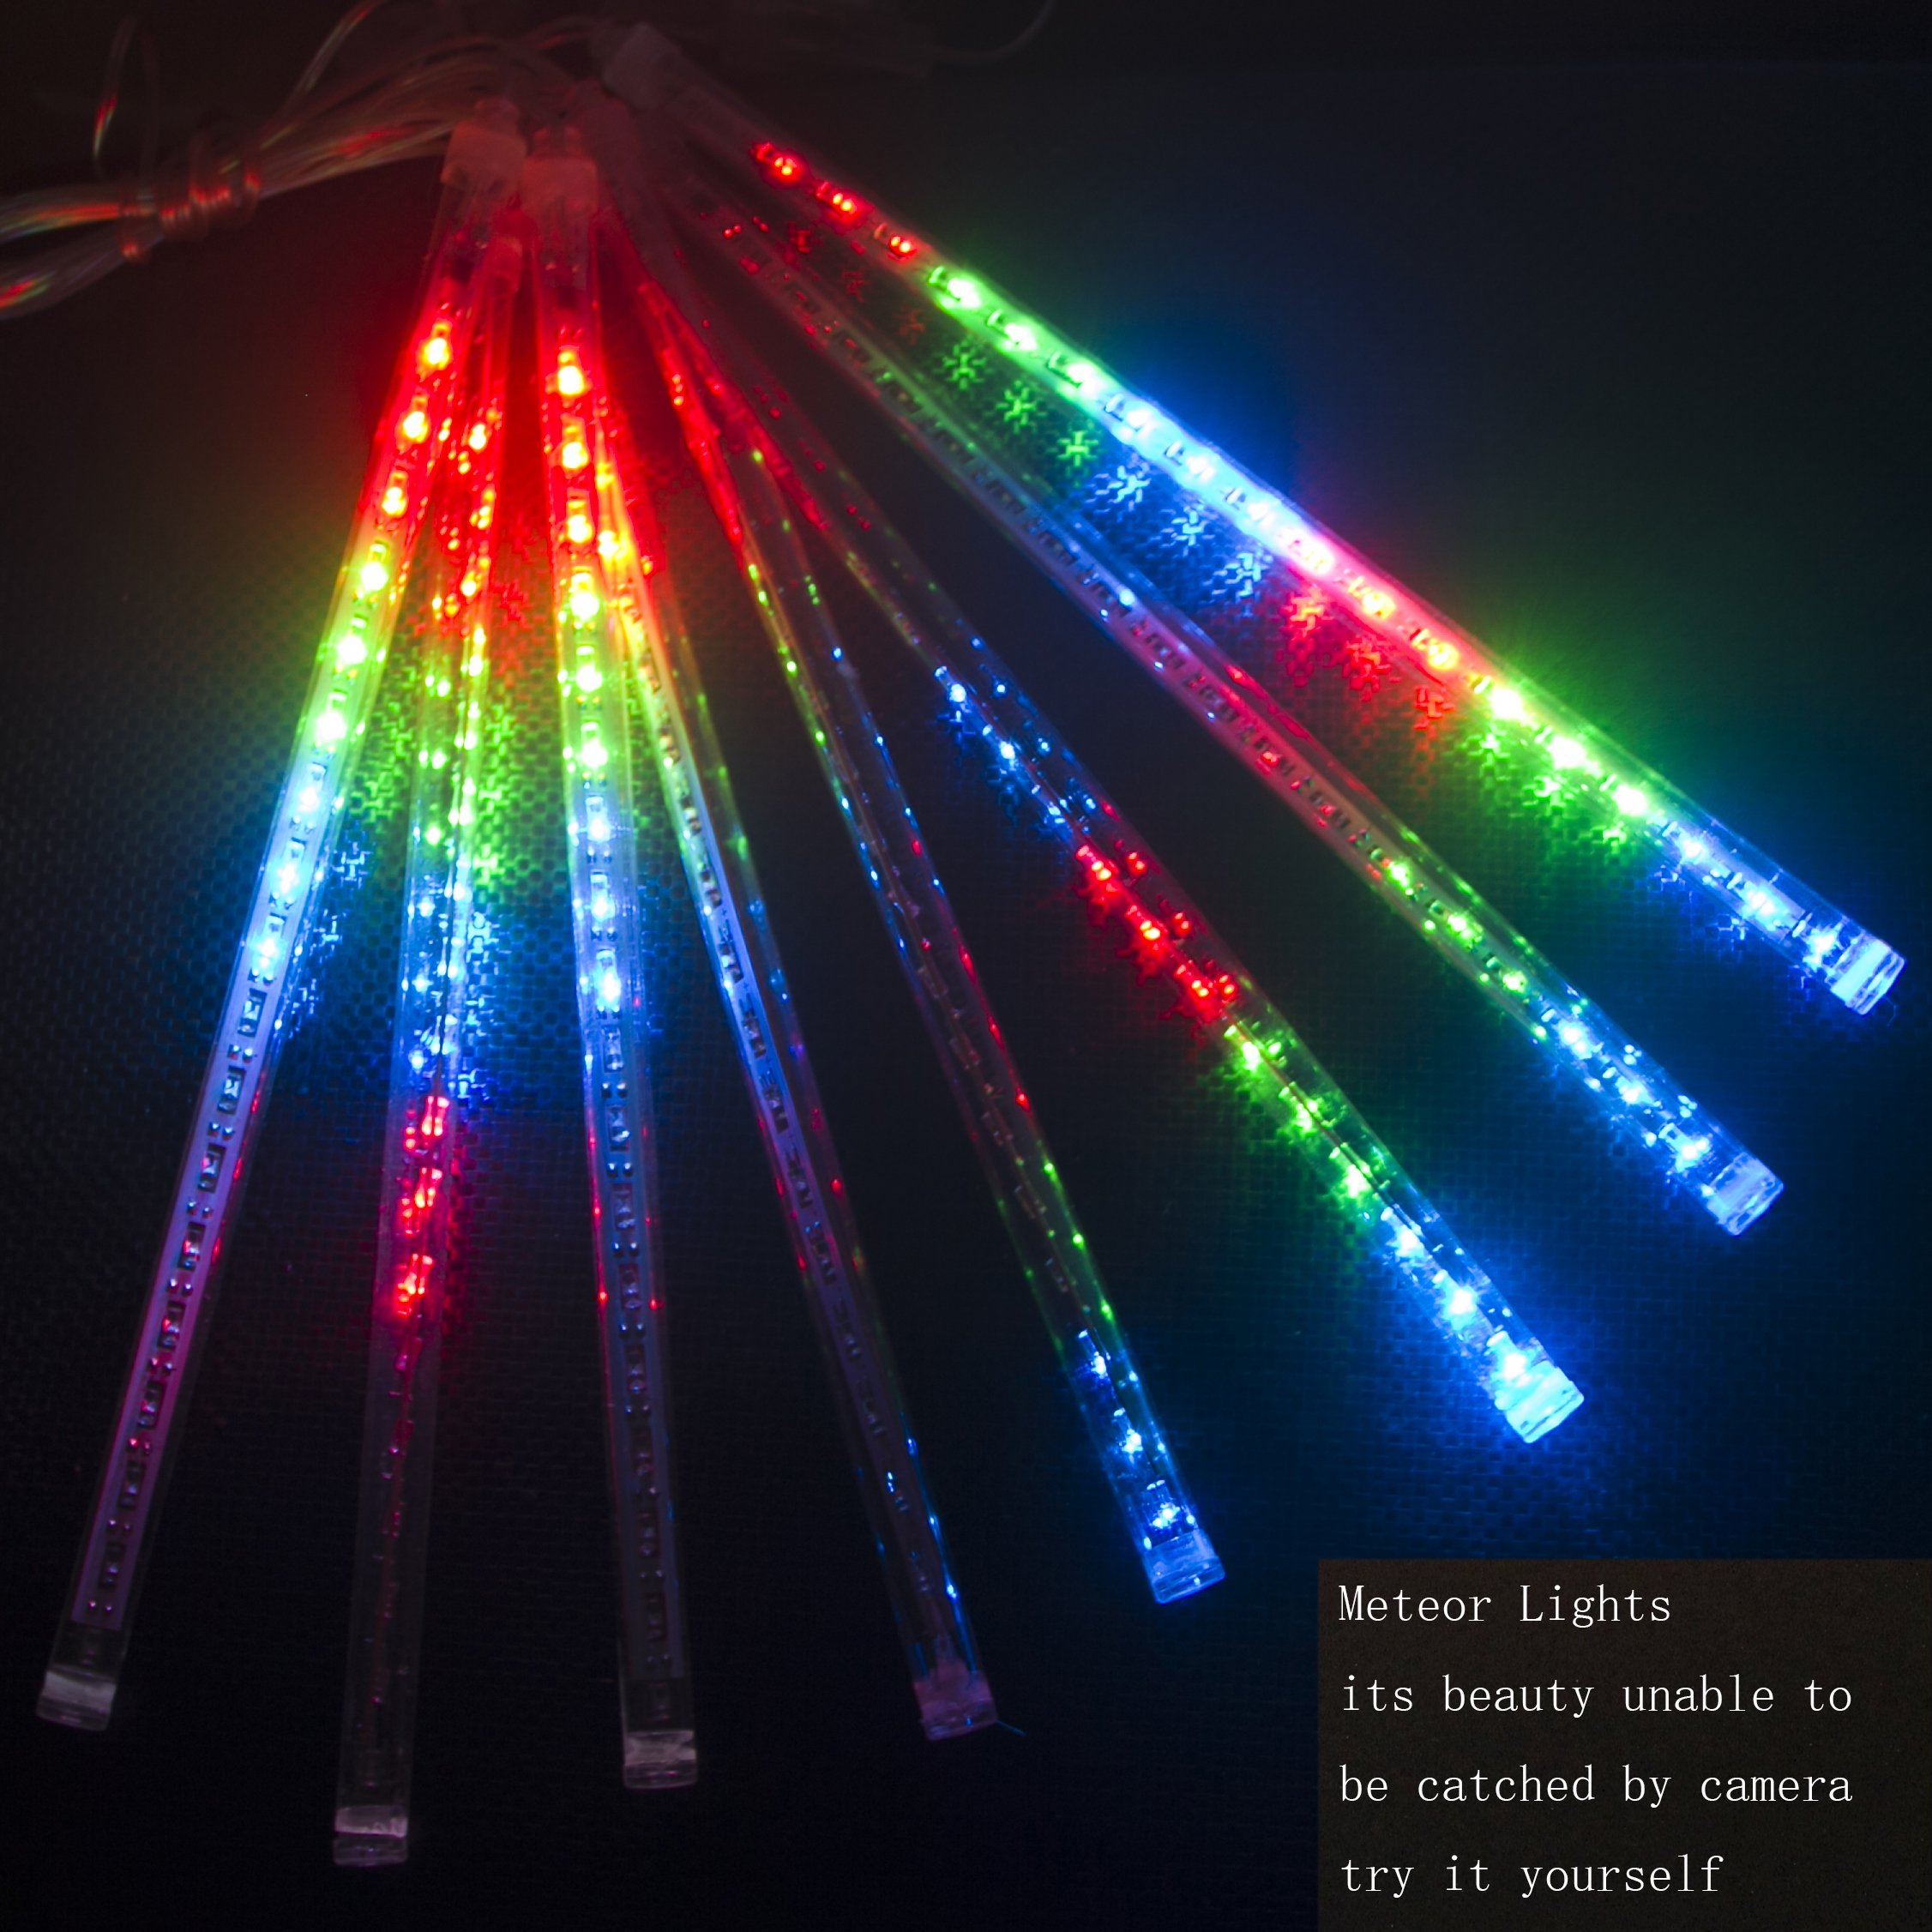 CDL 10sets Meteor Icicle Snow Falling Rain Drop 50cm 8 Tubes 240 LED Shower Christmas Raindrop Cascading Lights for Wedding Party Holiday Xmas Halloween Home Garden Tree Decoration (10, Multi-colors)